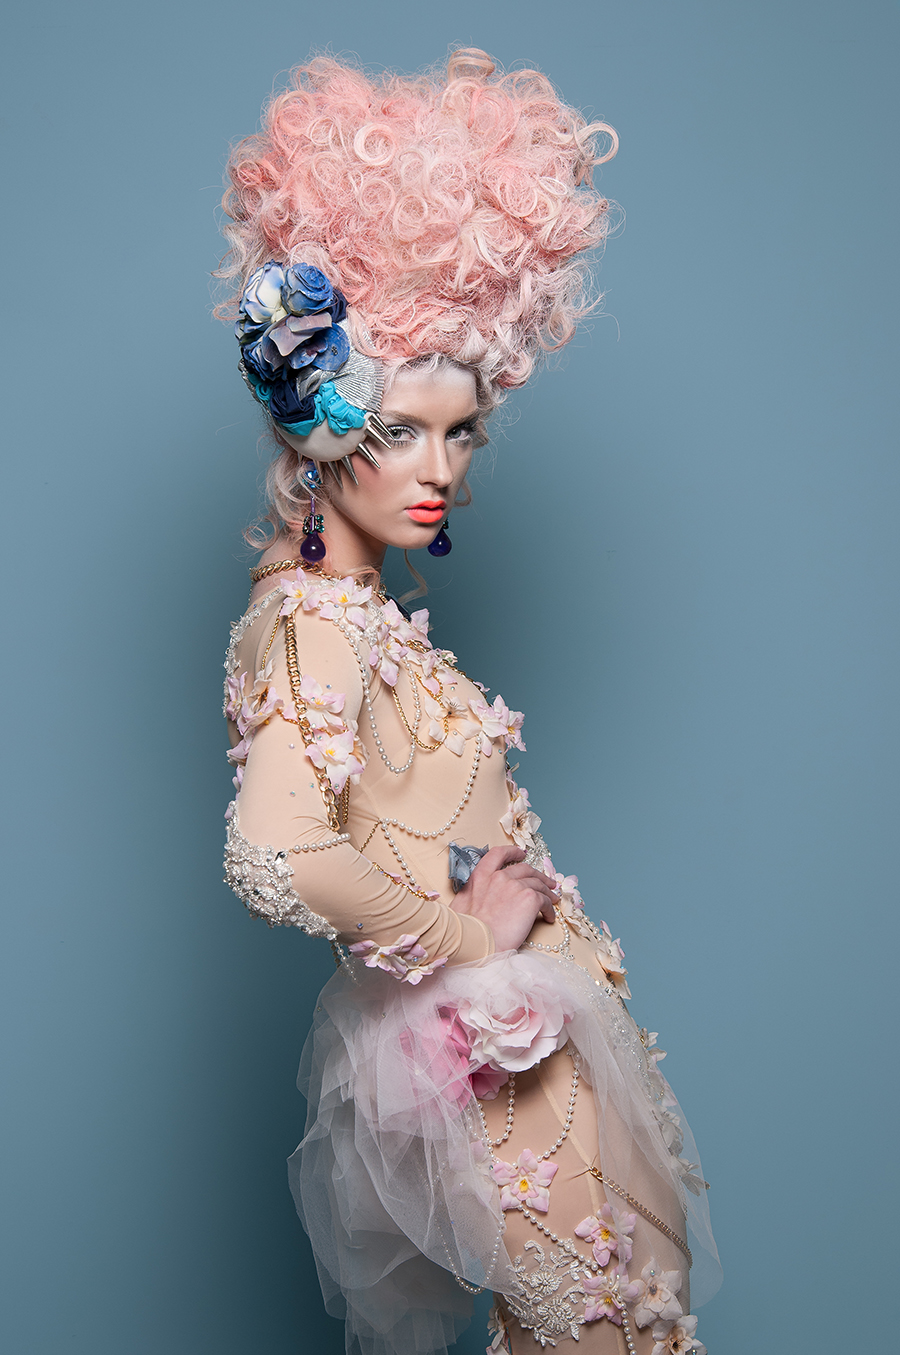 Modern Marie Antoinette / Photography by Paul Webb Photography / Uploaded 6th November 2015 @ 03:31 PM